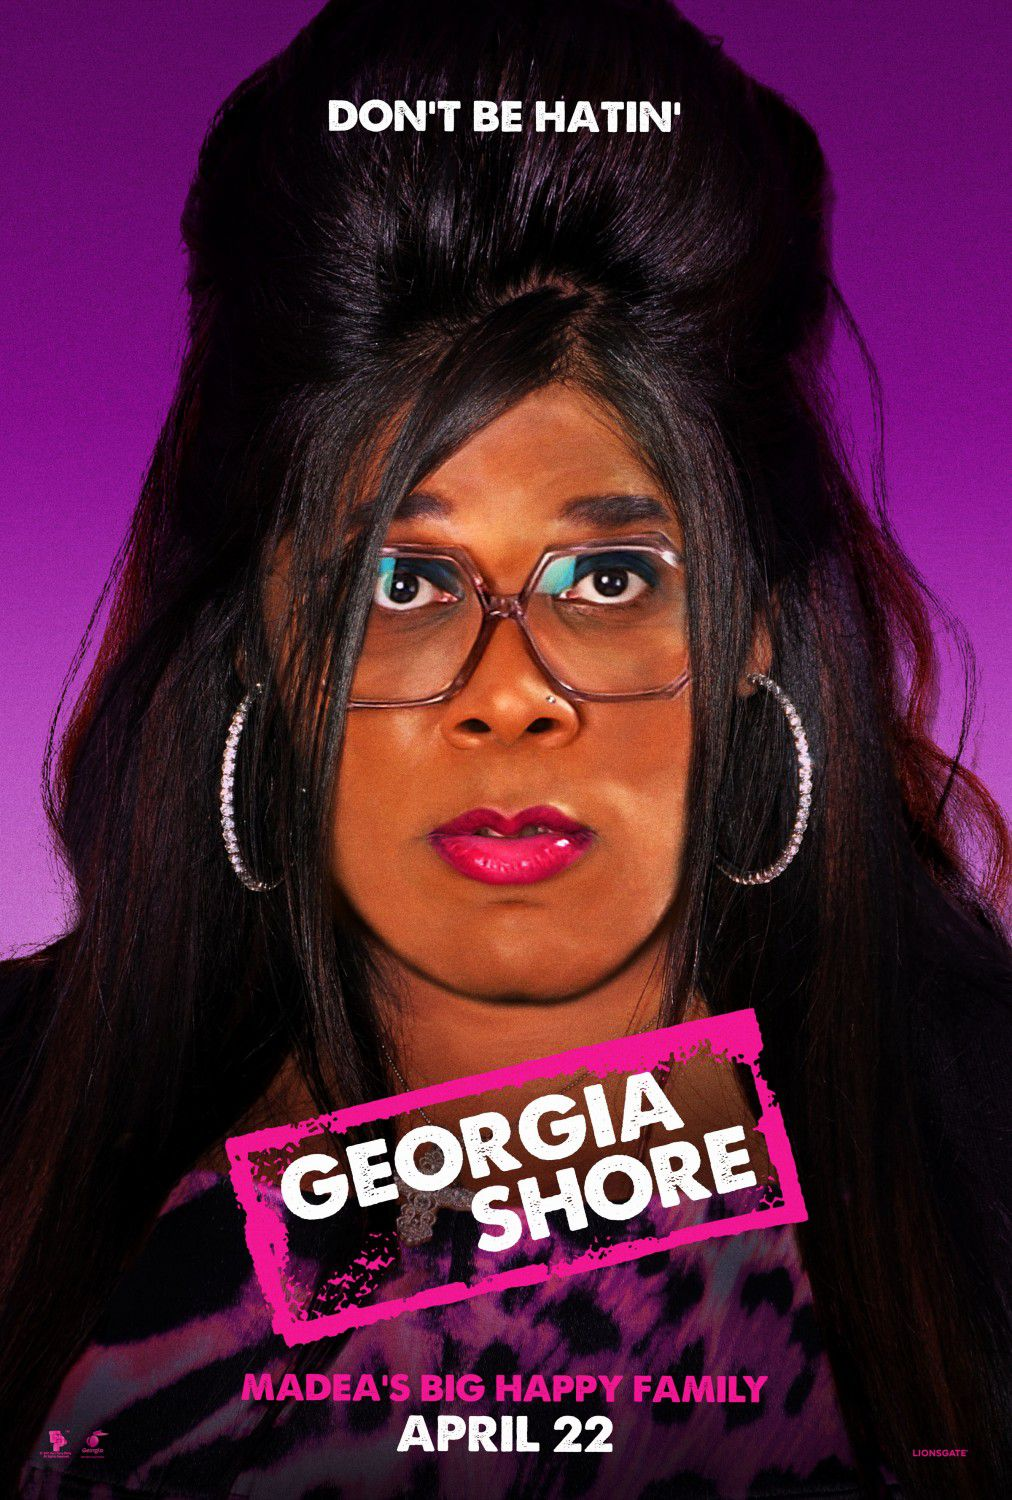 Madeas big Happy Family - Madea Famiglia Felice - Tyler Perry - film fun poster - Georgia Shore - Madea